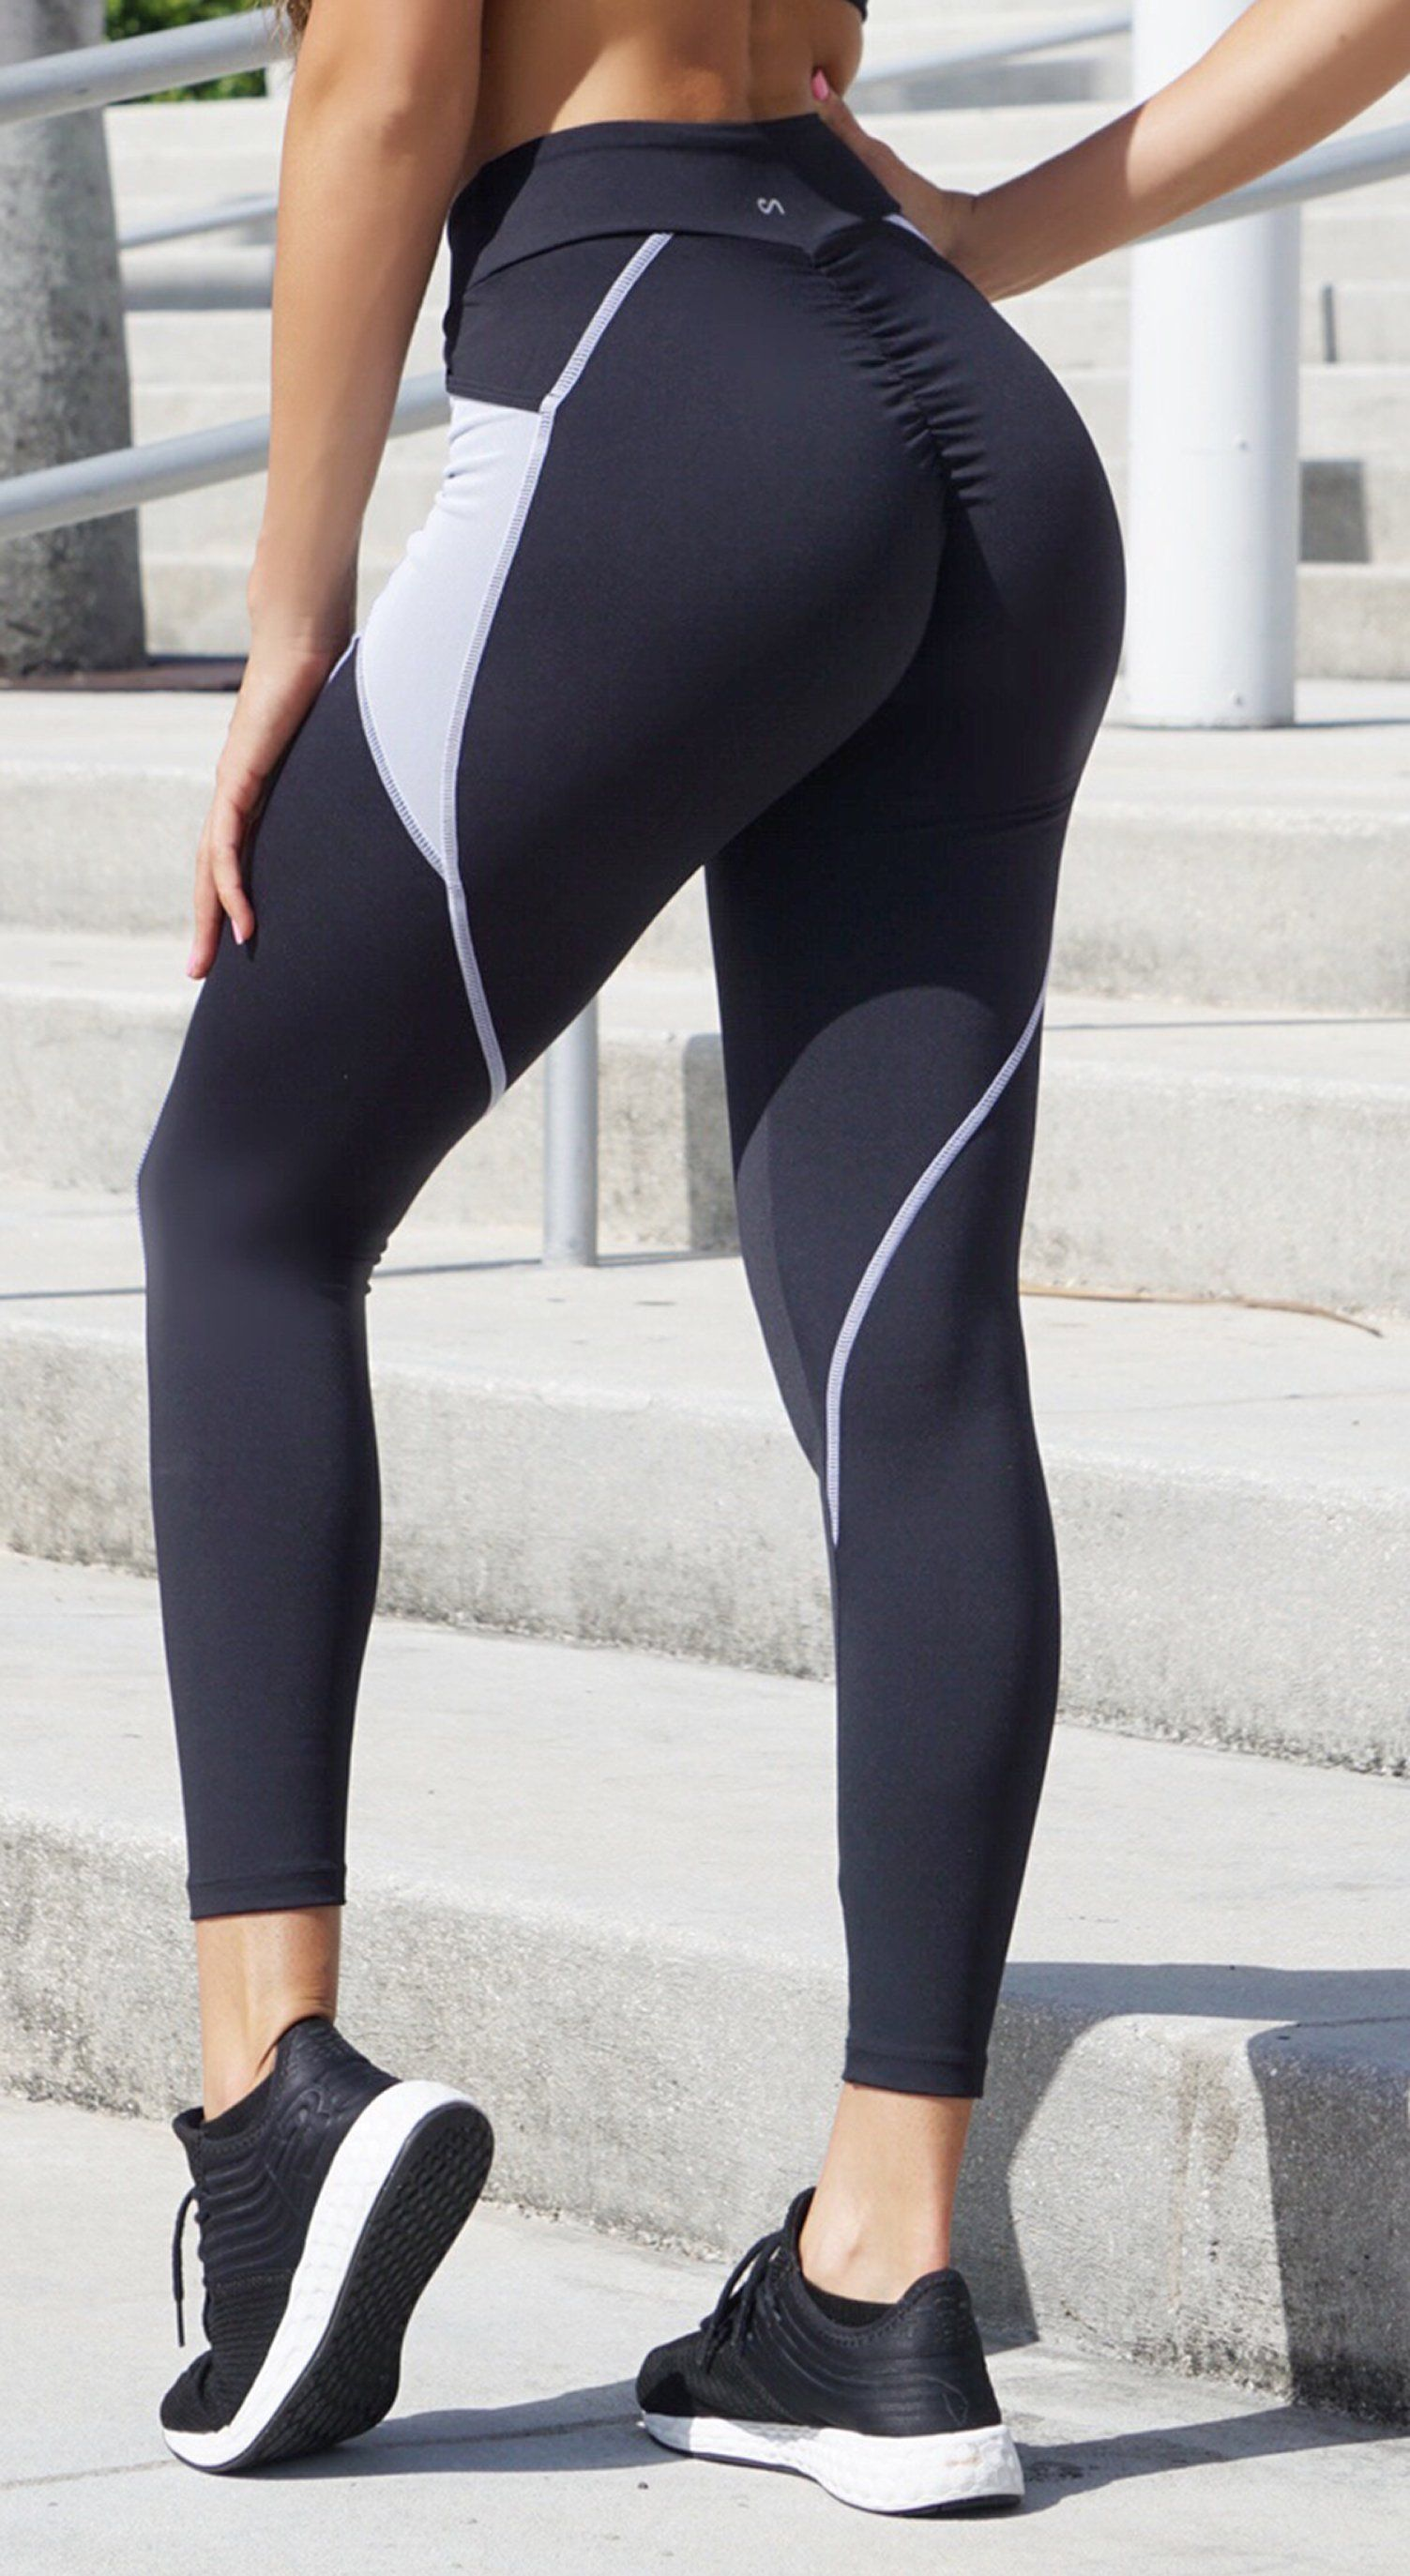 Brazilian Workout Legging - Scrunch Booty Stash Pocket Leggings Black & White